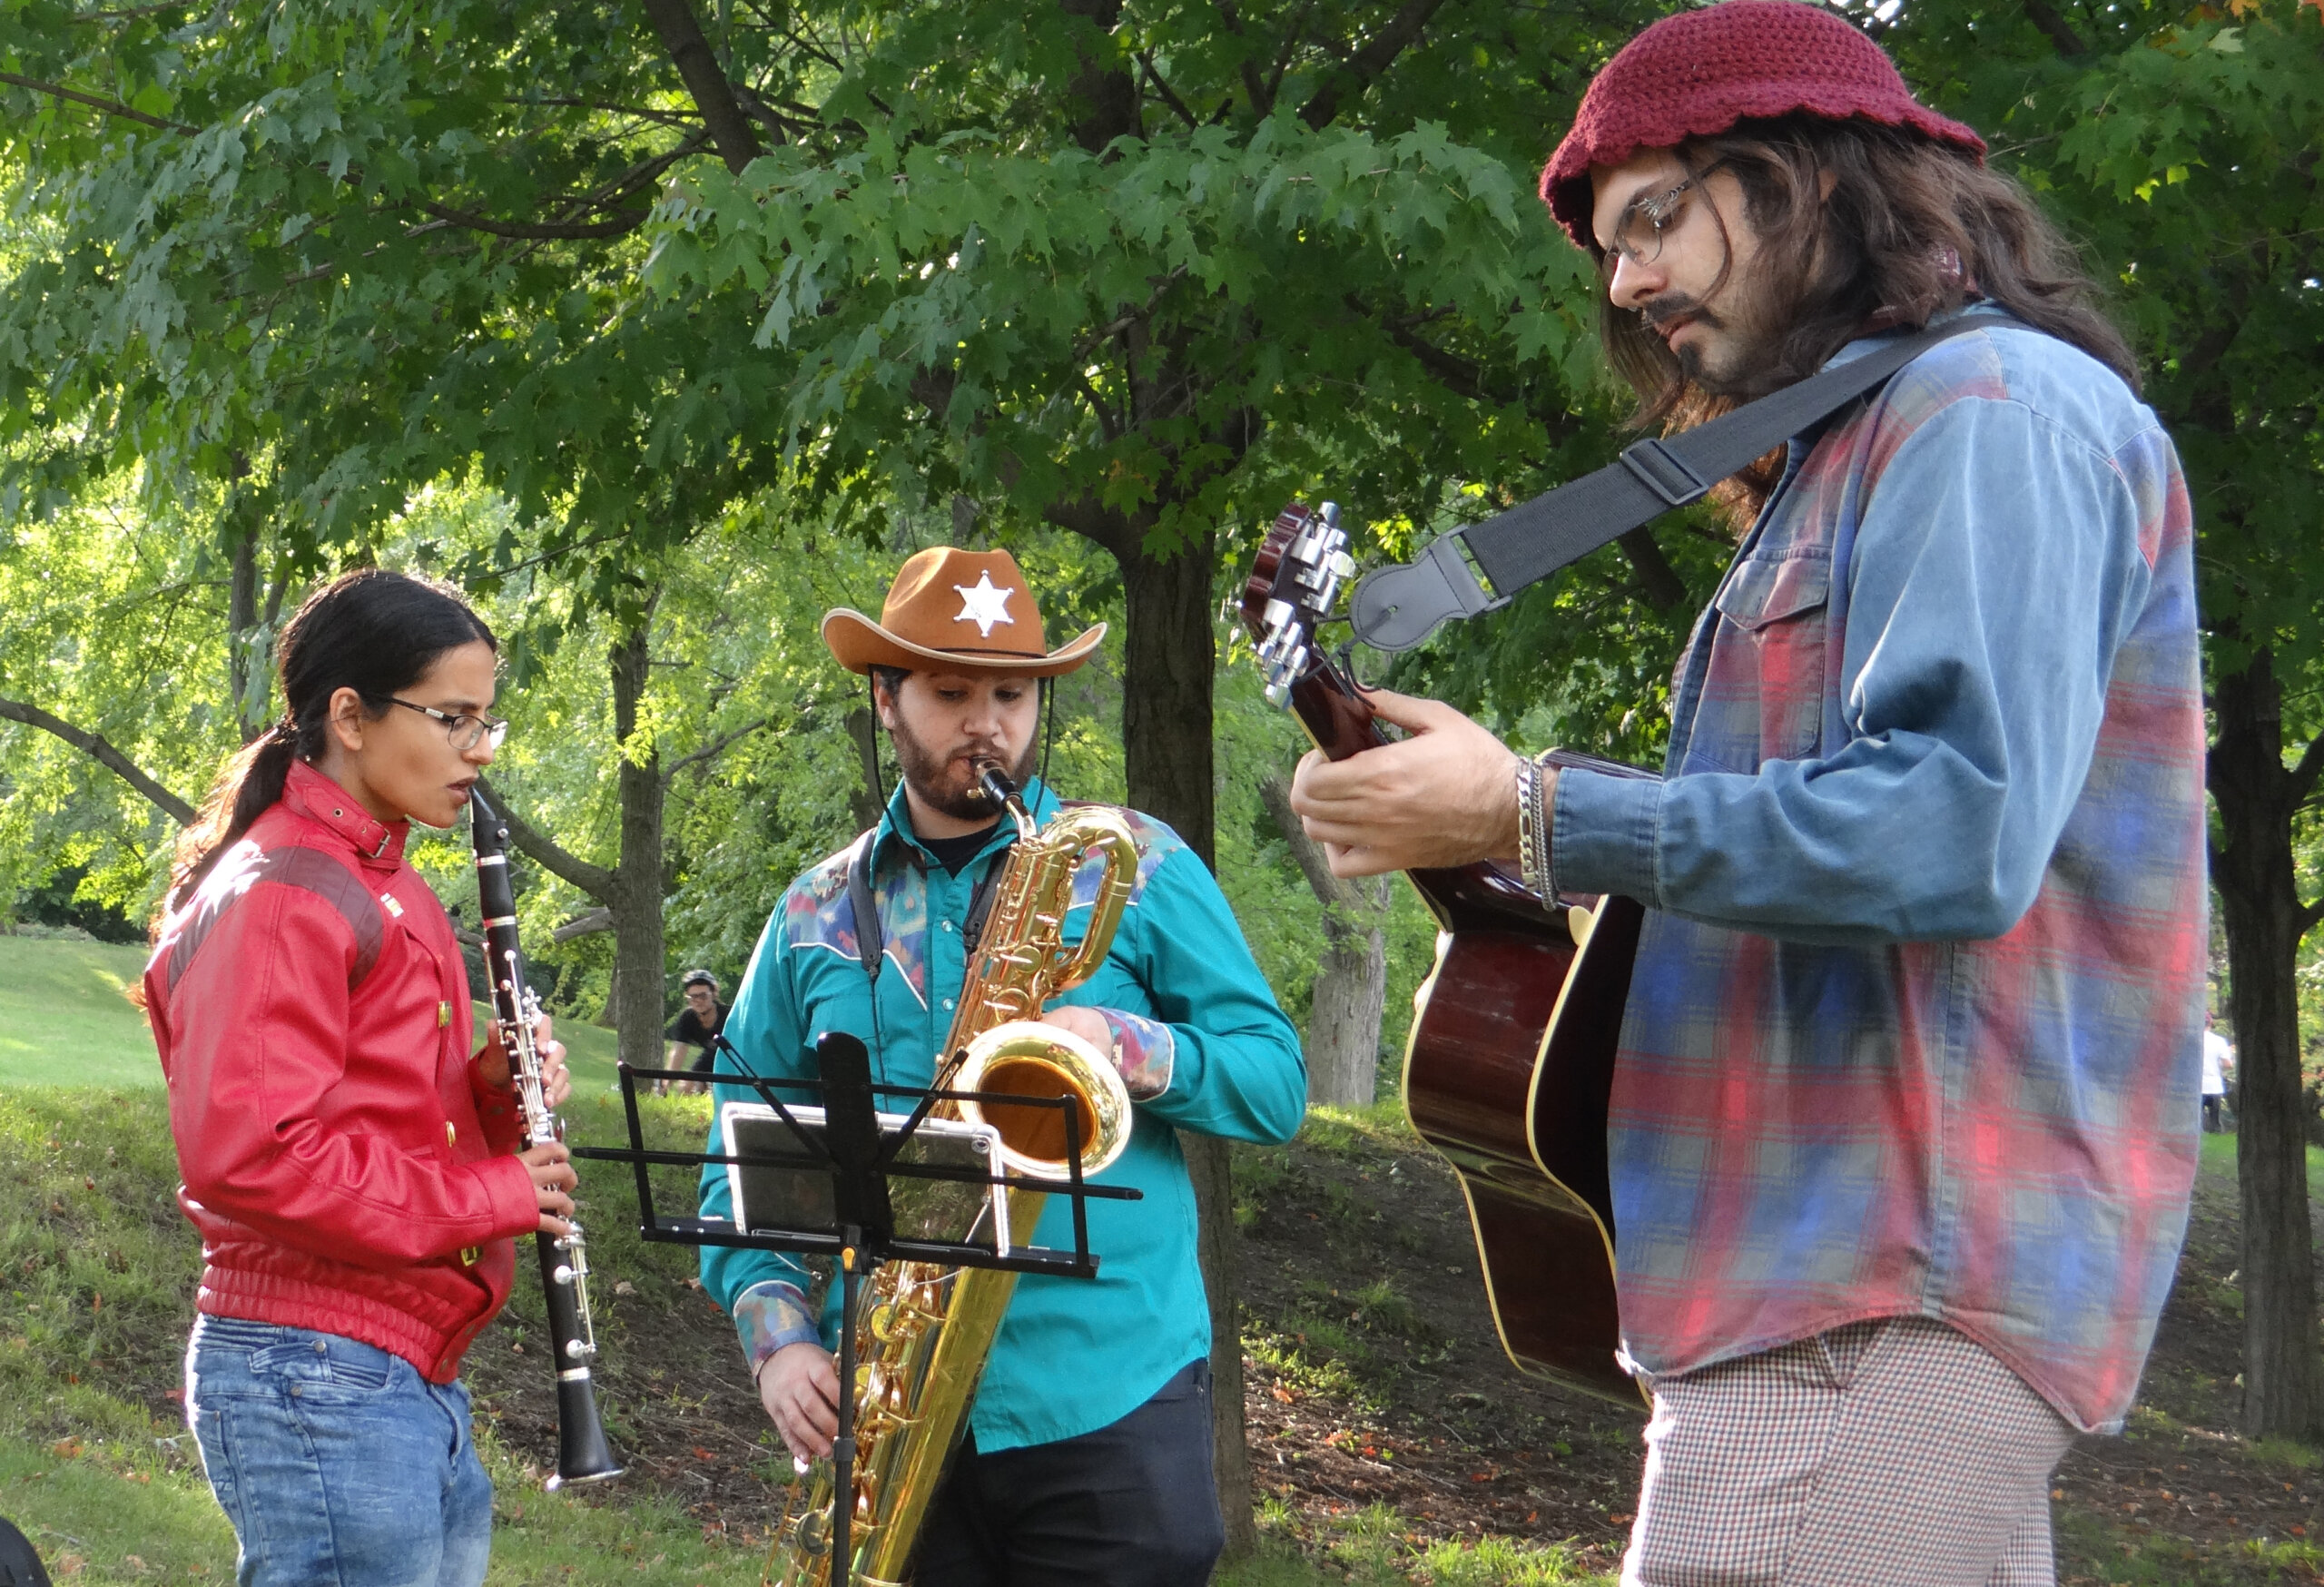 Members of The Maximum Chill play their instruments in an outdoor setting.